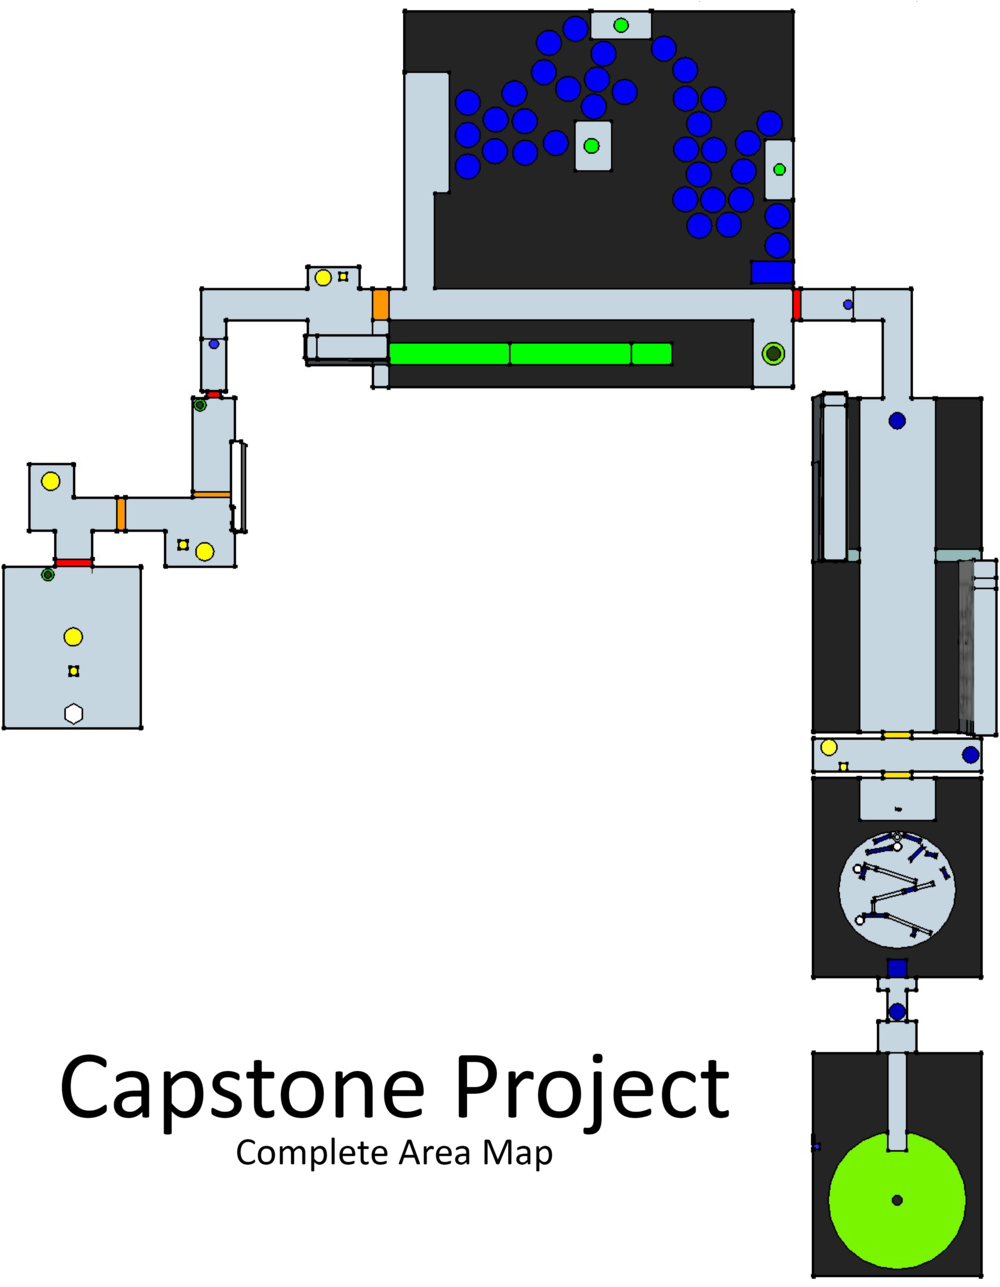 Capstone_PaperMap_Complete.png